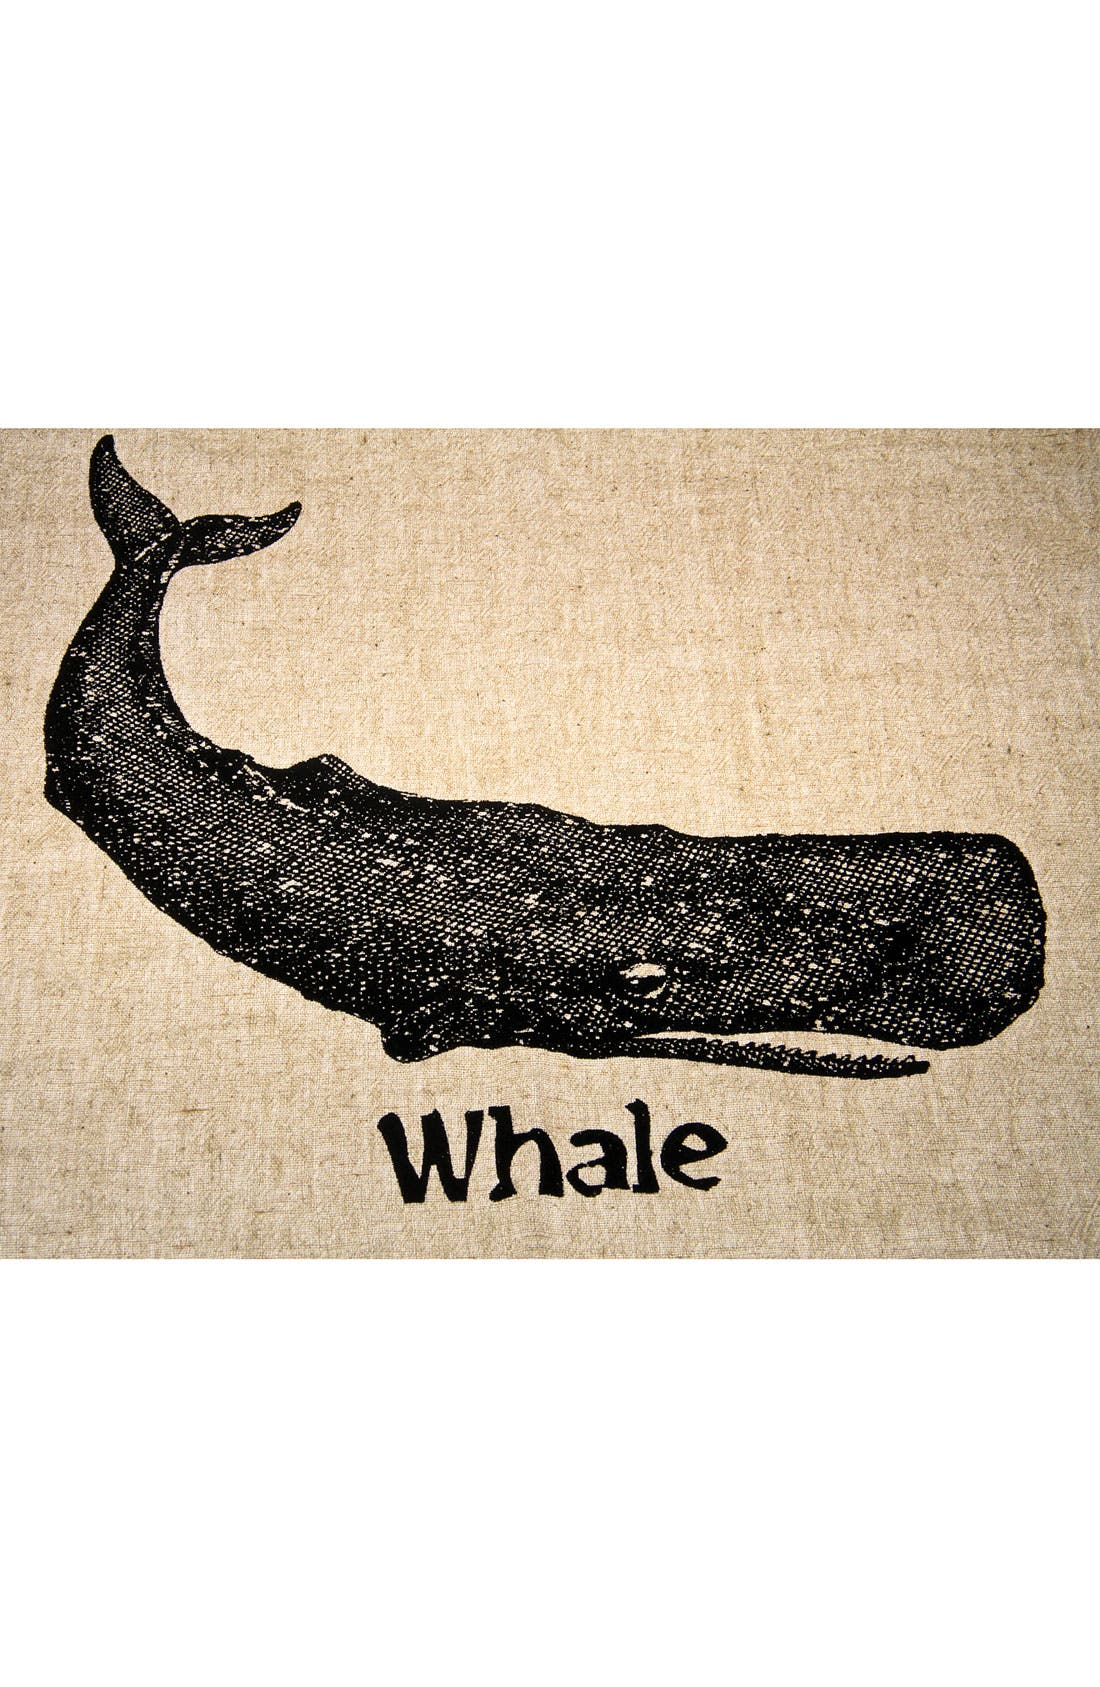 Alternate Image 1 Selected - Blithe and Bonny 'Whale' Dish Towels